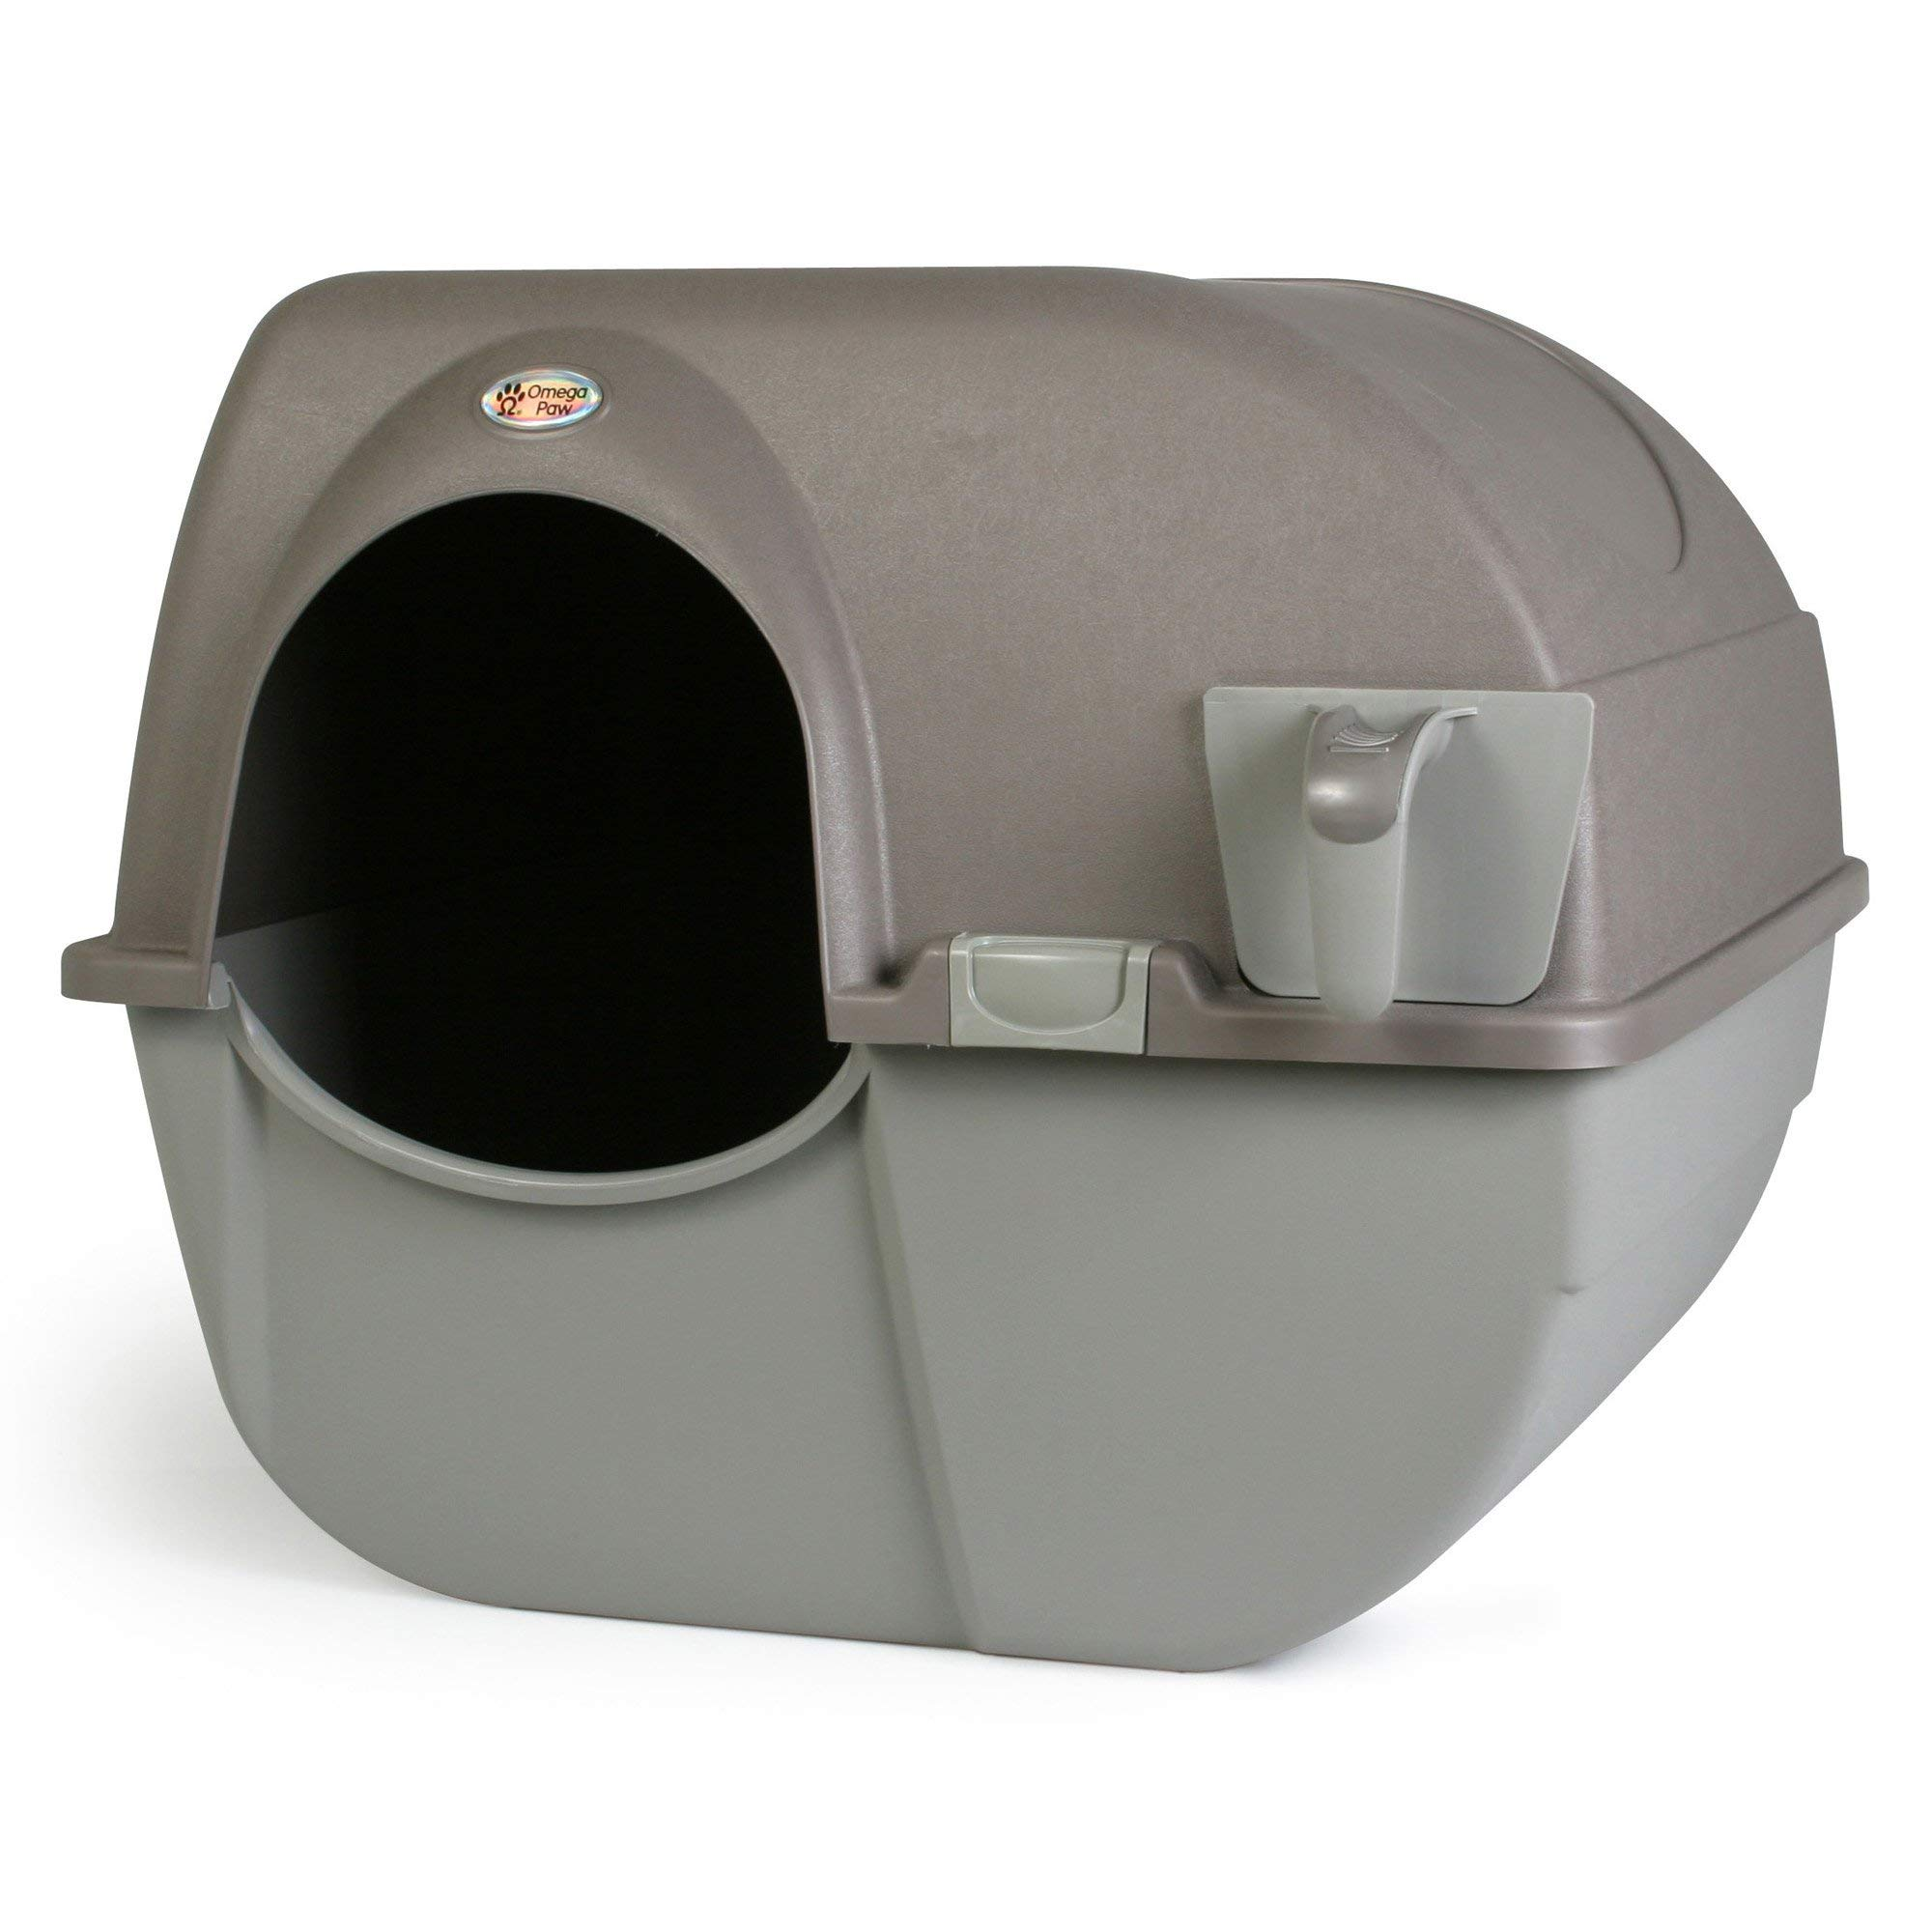 Omega Paw Self-Cleaning Litter Box, Large by Omega Paw